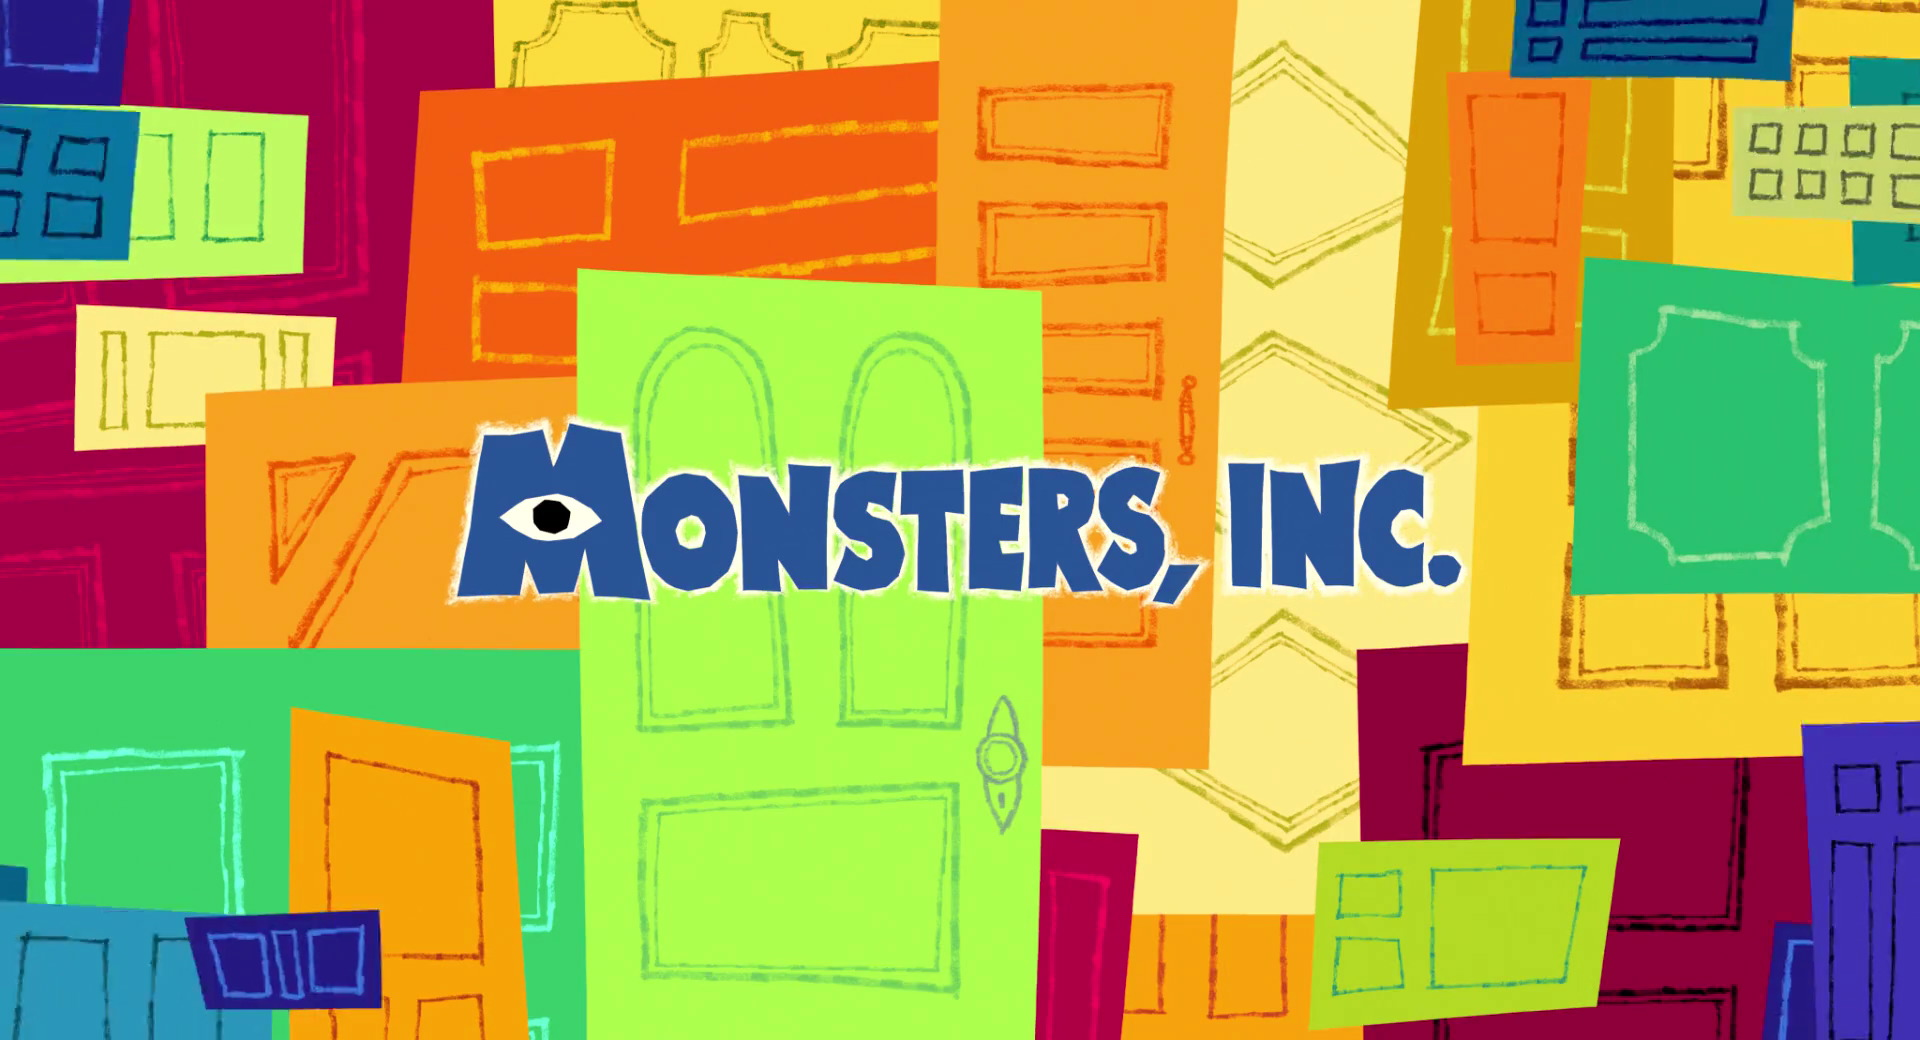 Monsters Inc  spin-off series announced - 5 things we want to see